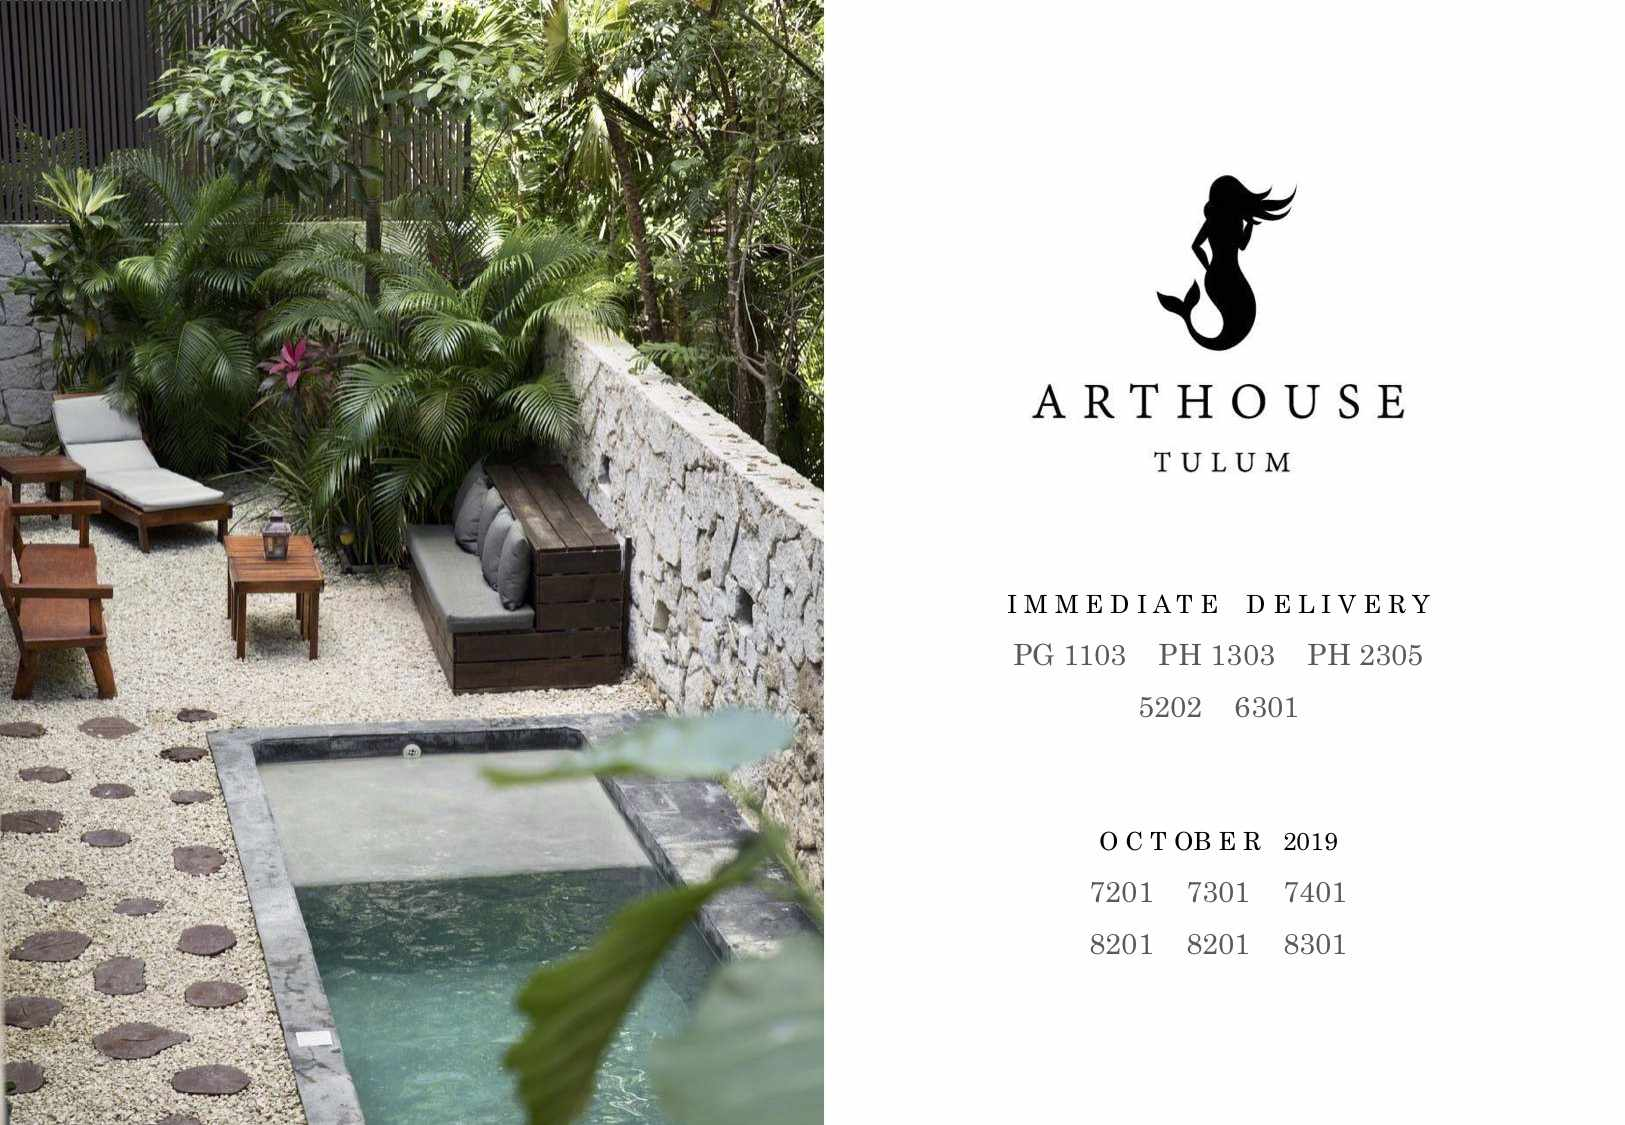 Arthouse immediate Delivery